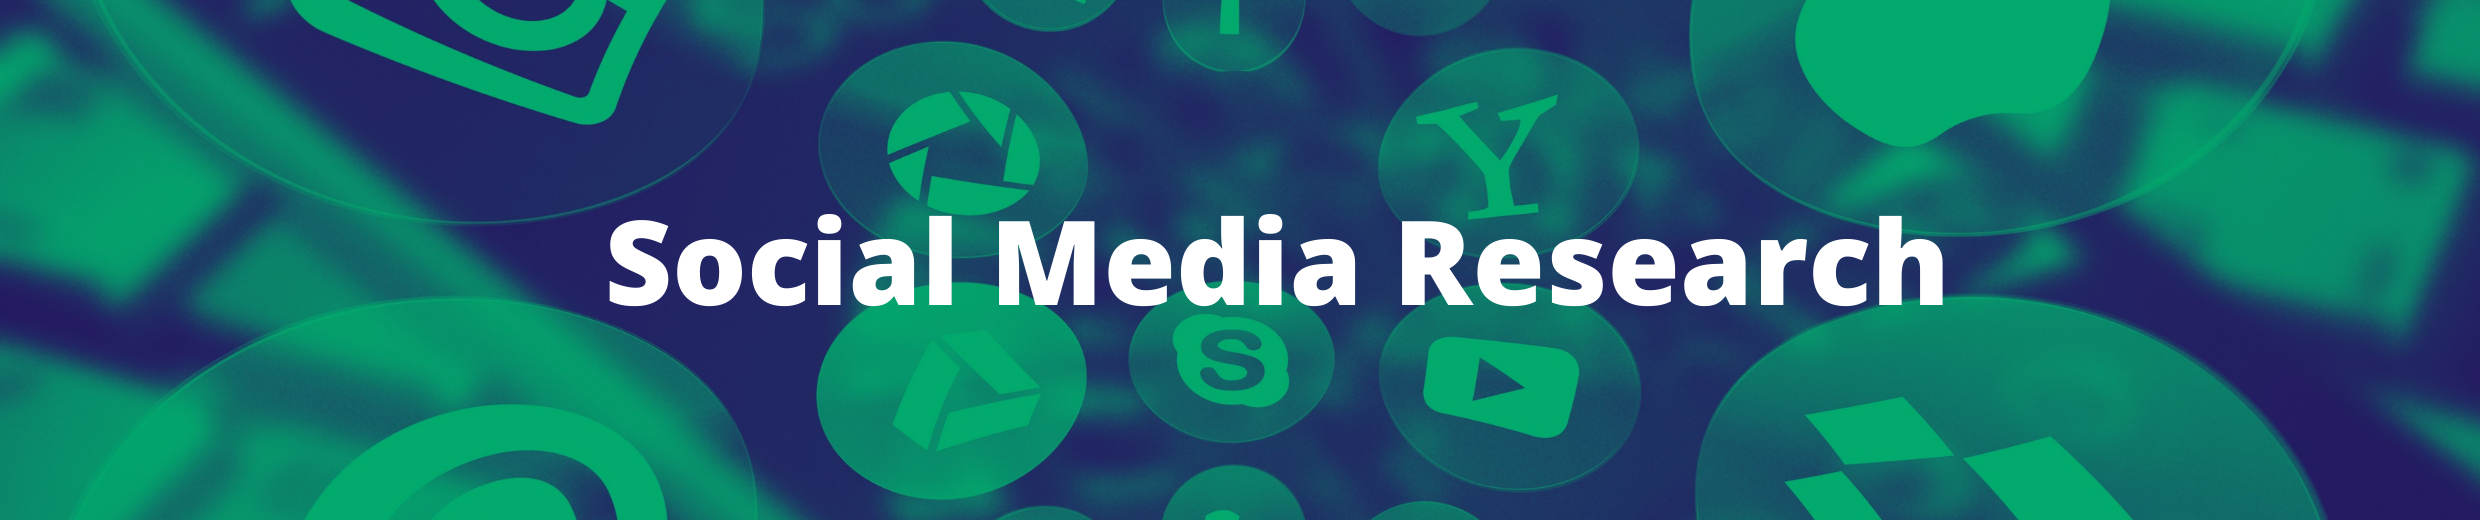 Banner with social media icons and text Social Media Research